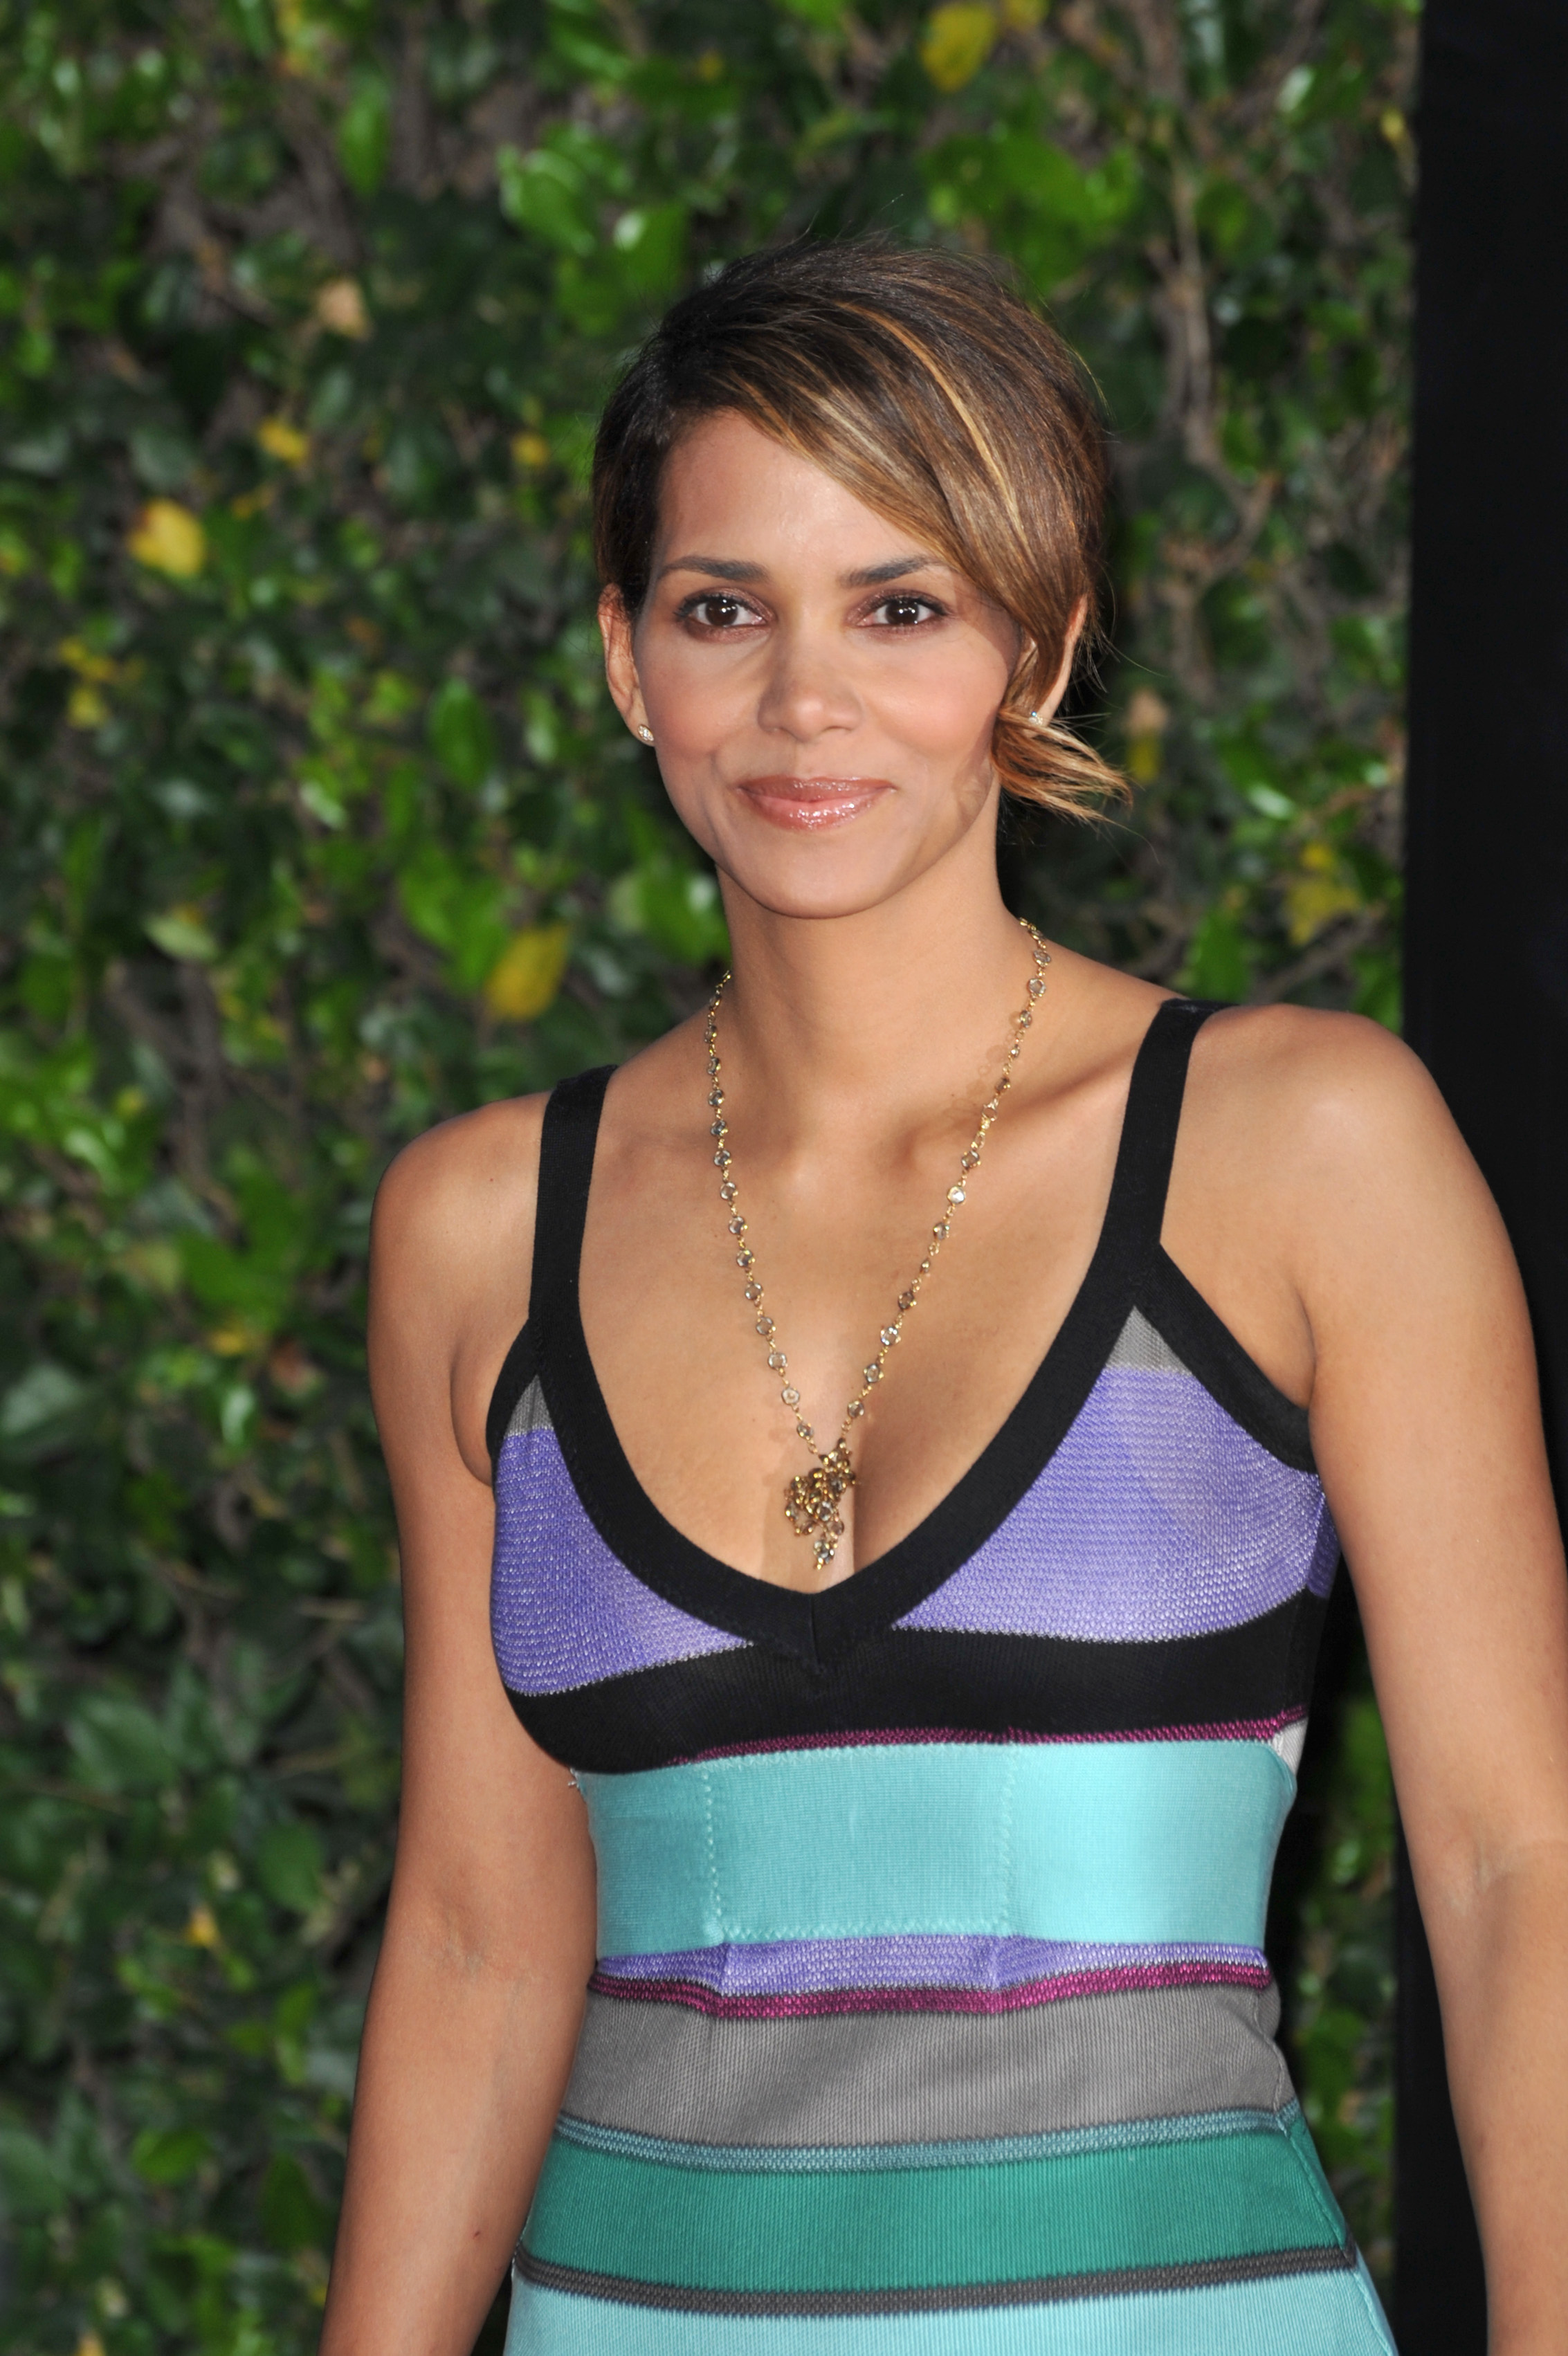 67617_Halle_Berry_The_Soloist_premiere_in_Los_Angeles_13_122_435lo.jpg